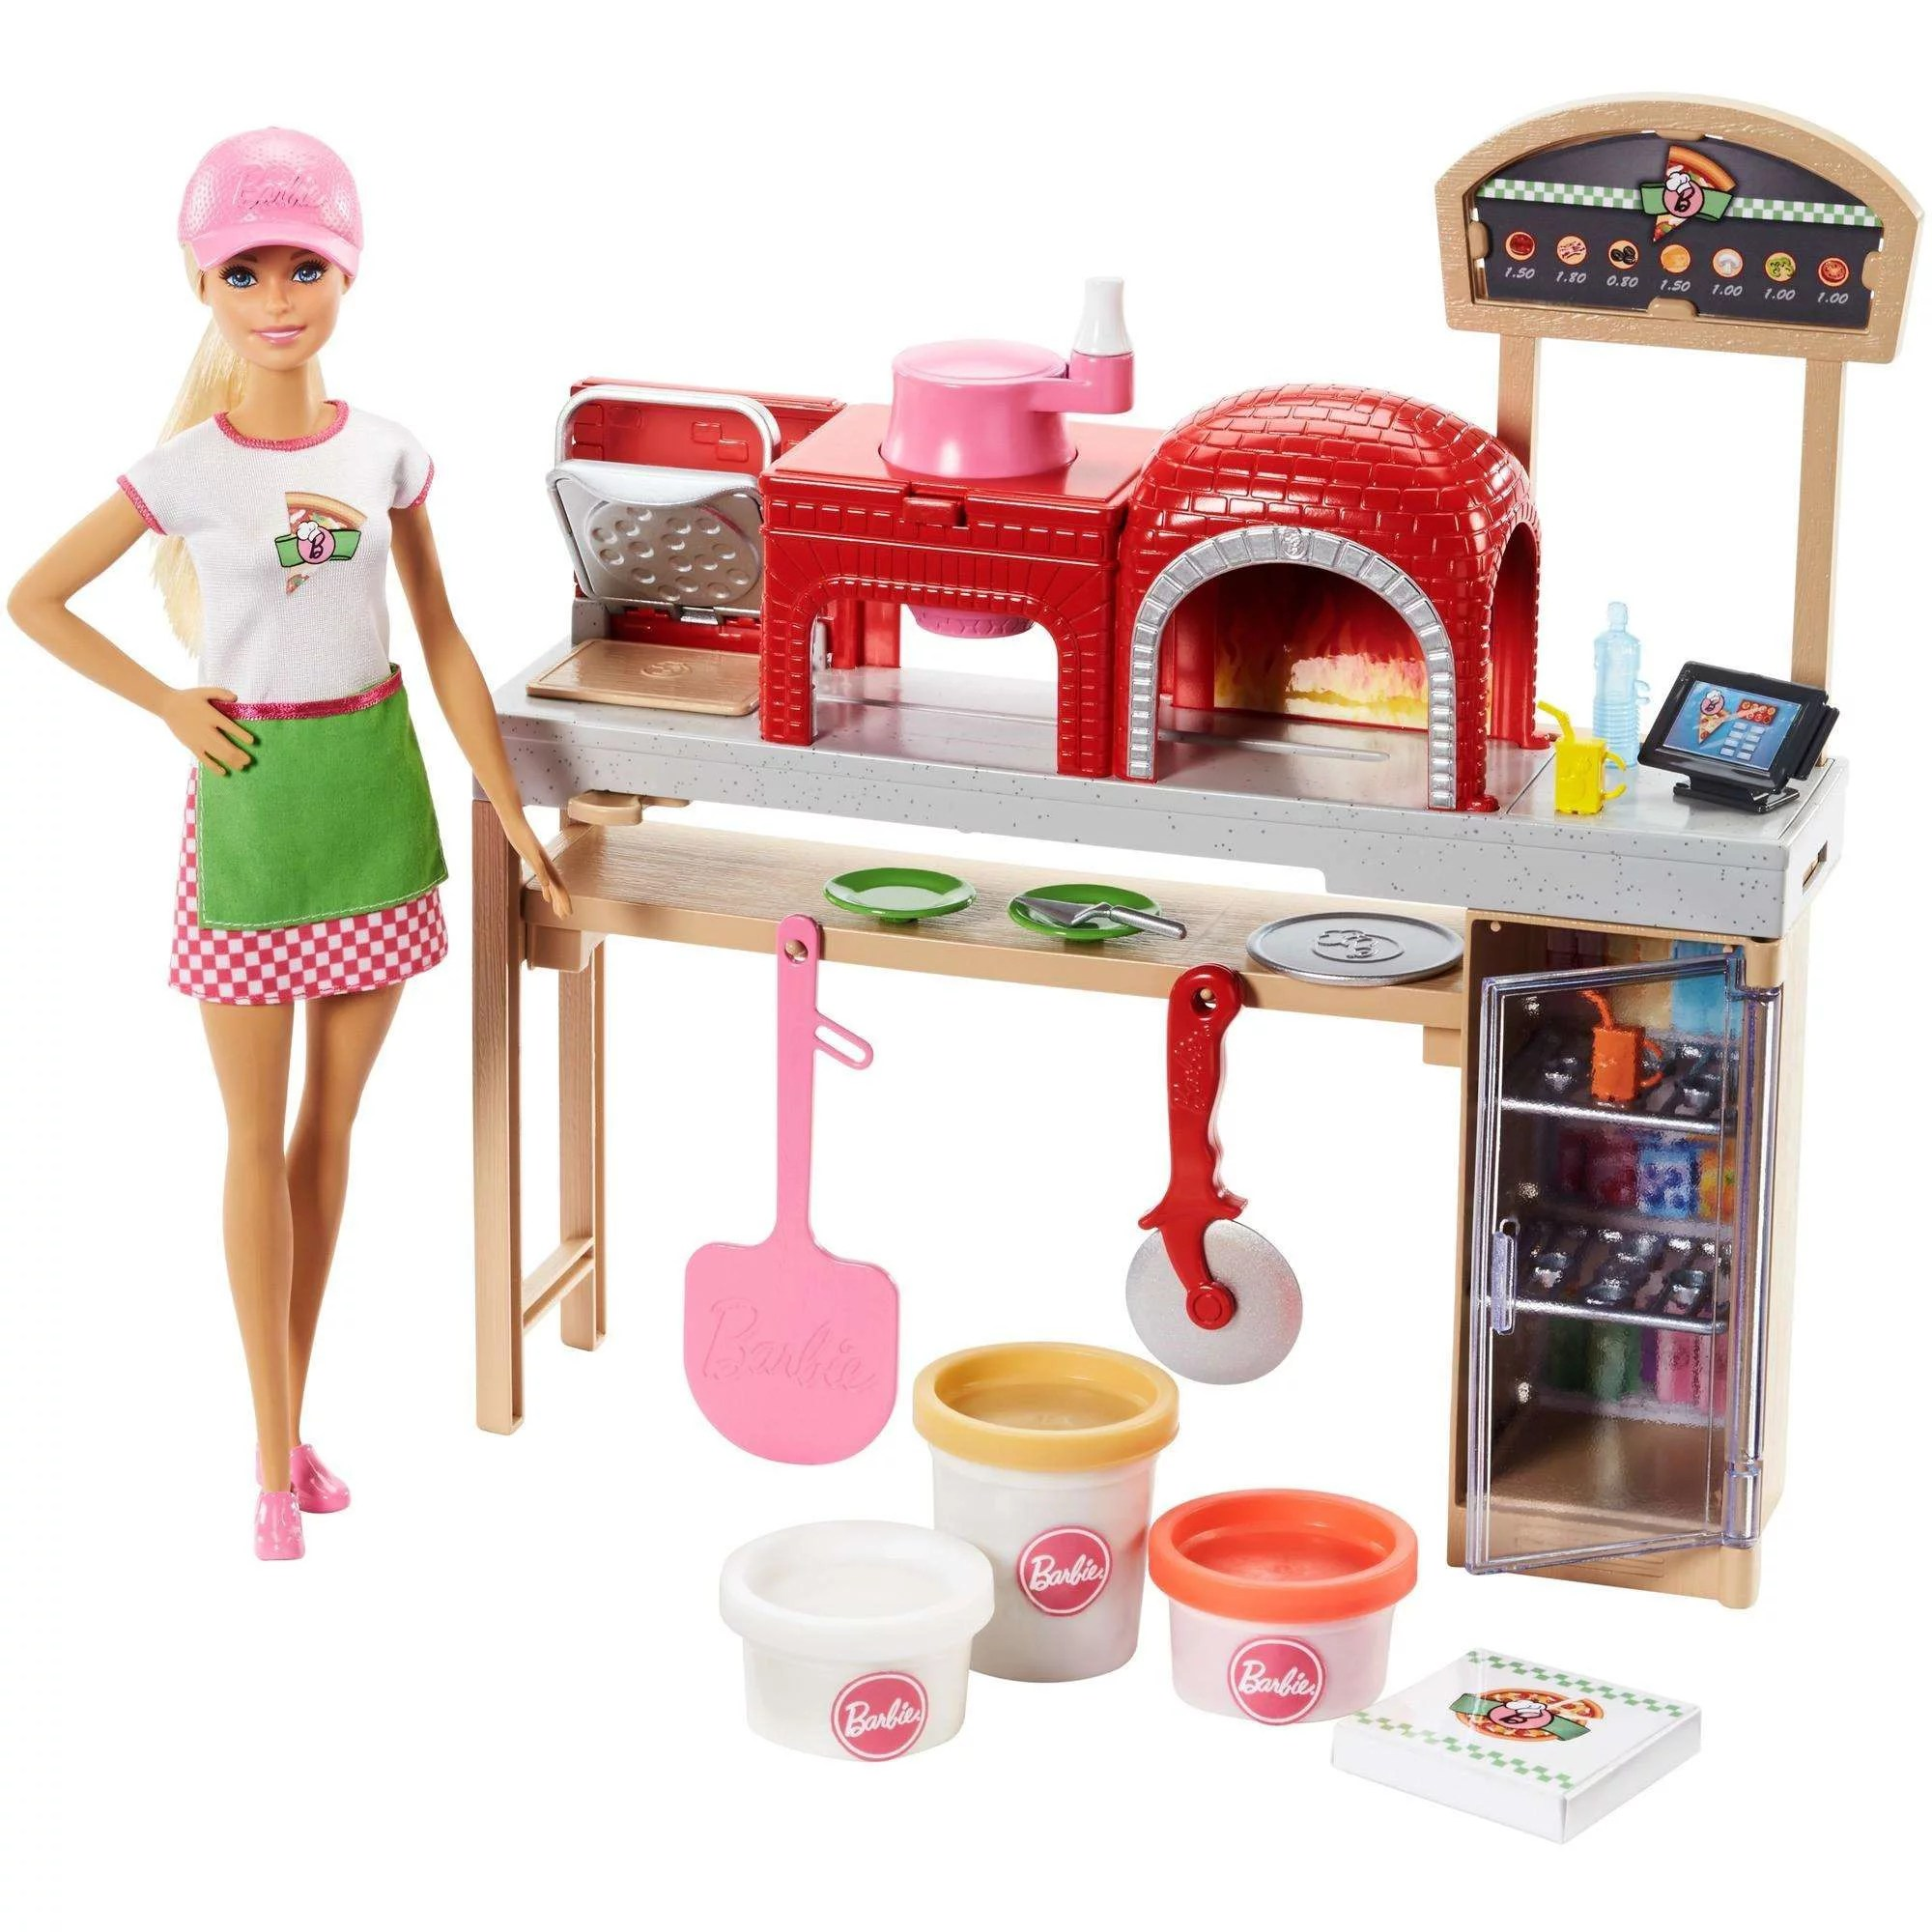 barbie kitchen playset trash can dimensions cooking baking pizza making chef doll play set walmart com